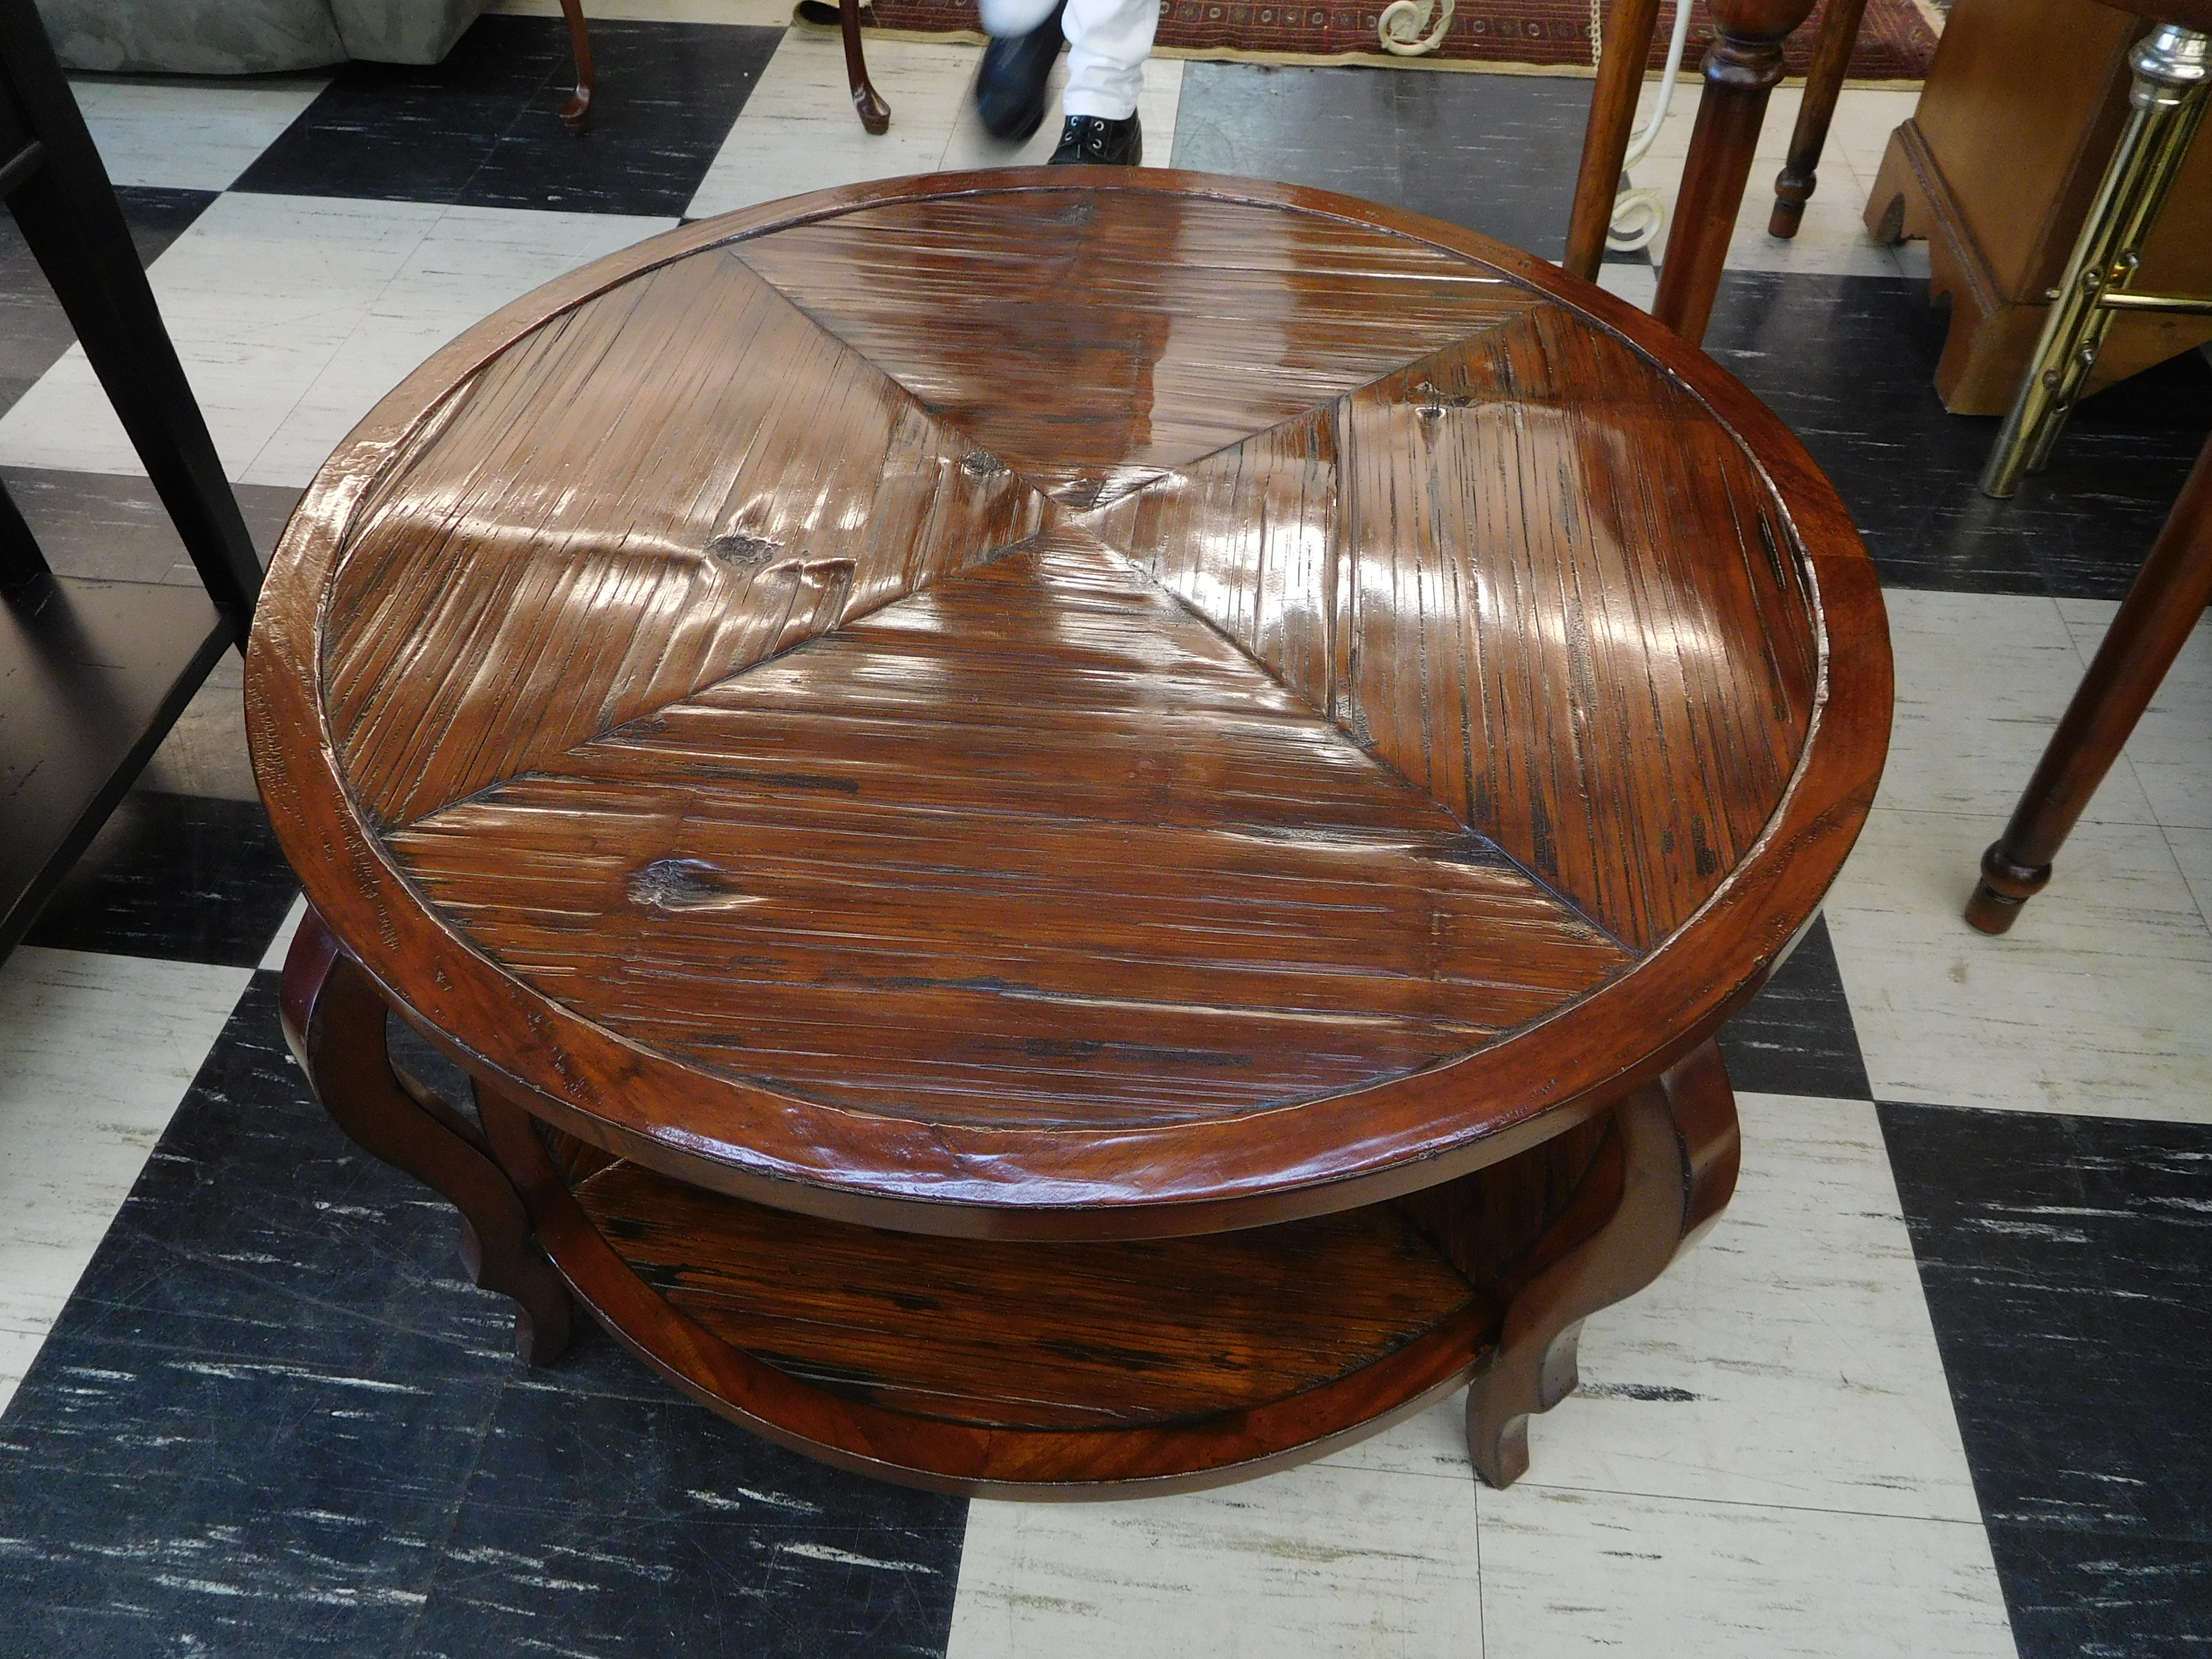 Henredon Acquisitions Round Coffee Table with Ridged/Textured Top